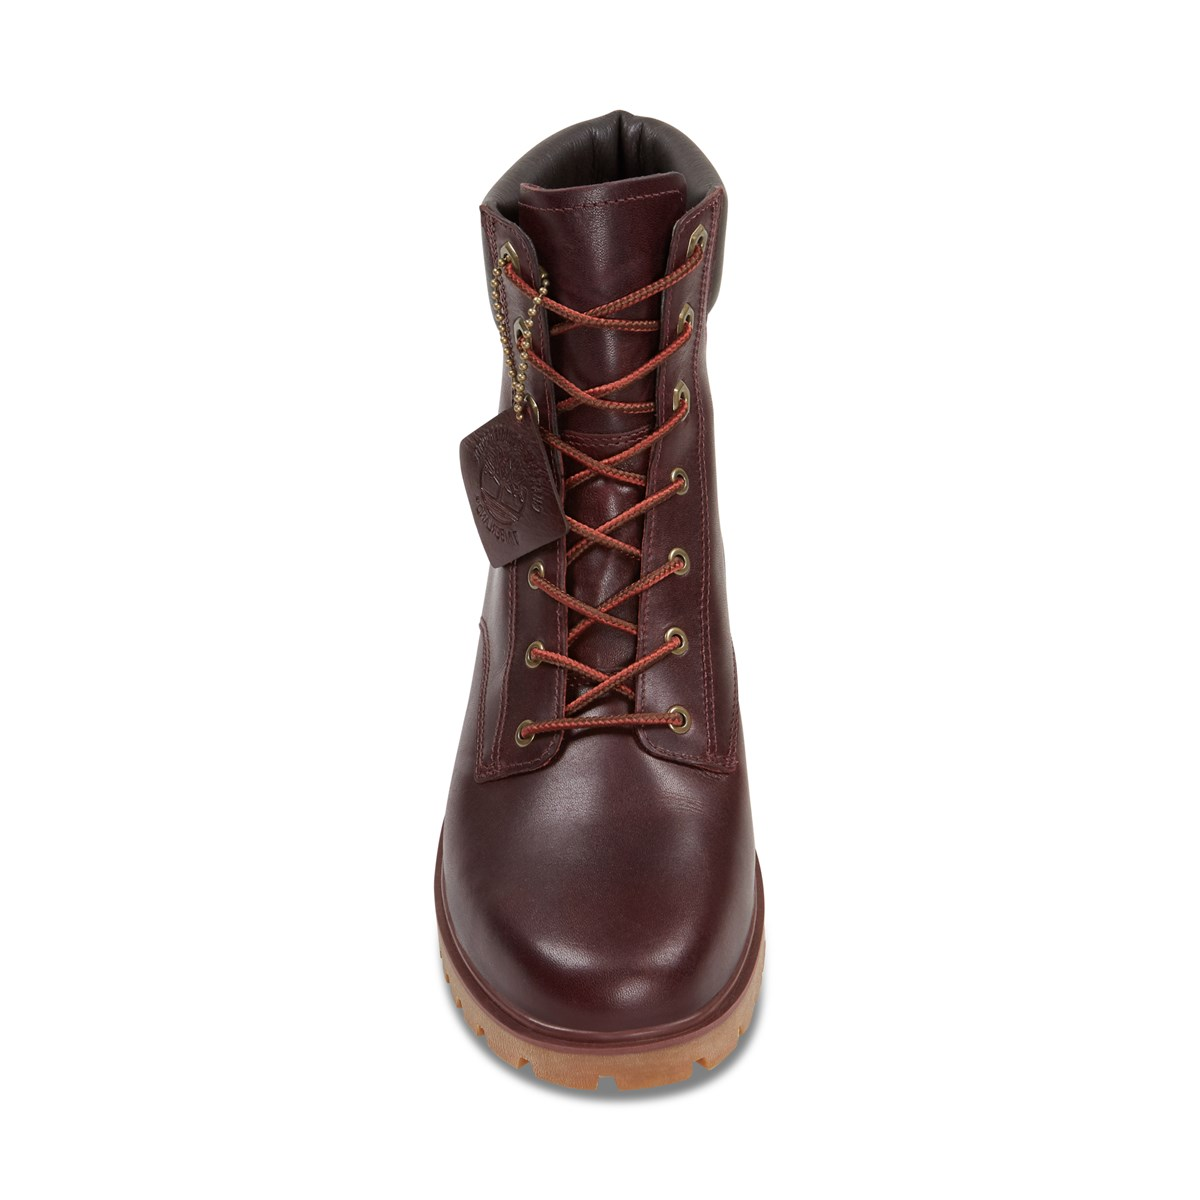 multiple colors aliexpress save up to 80% Women's Jayne Waterproof Boots in Burgundy